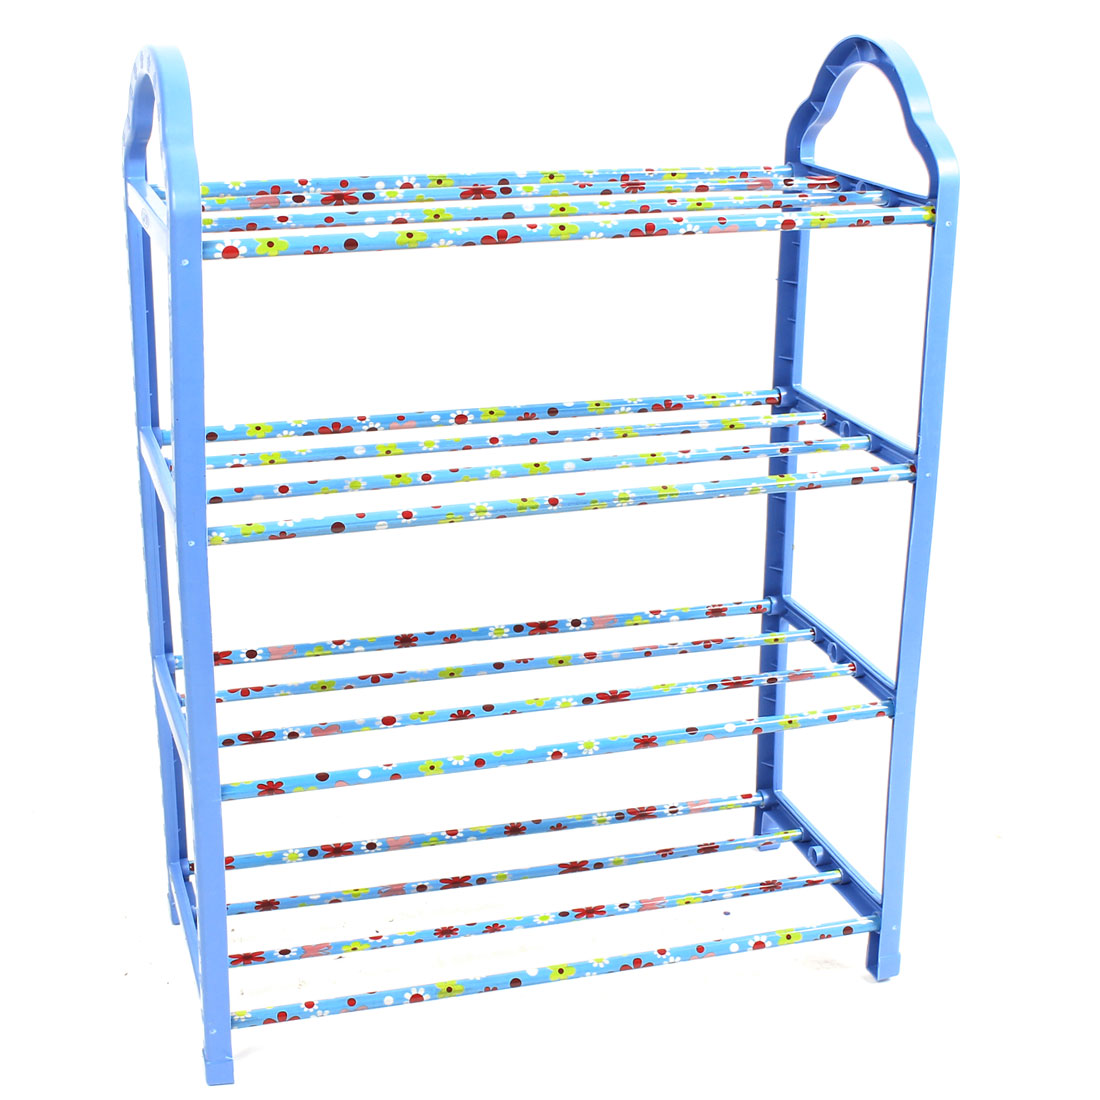 Household Plastic Shell 4 Layers Detachable Shoes Rack Storage Organizer Holder Shelf Blue